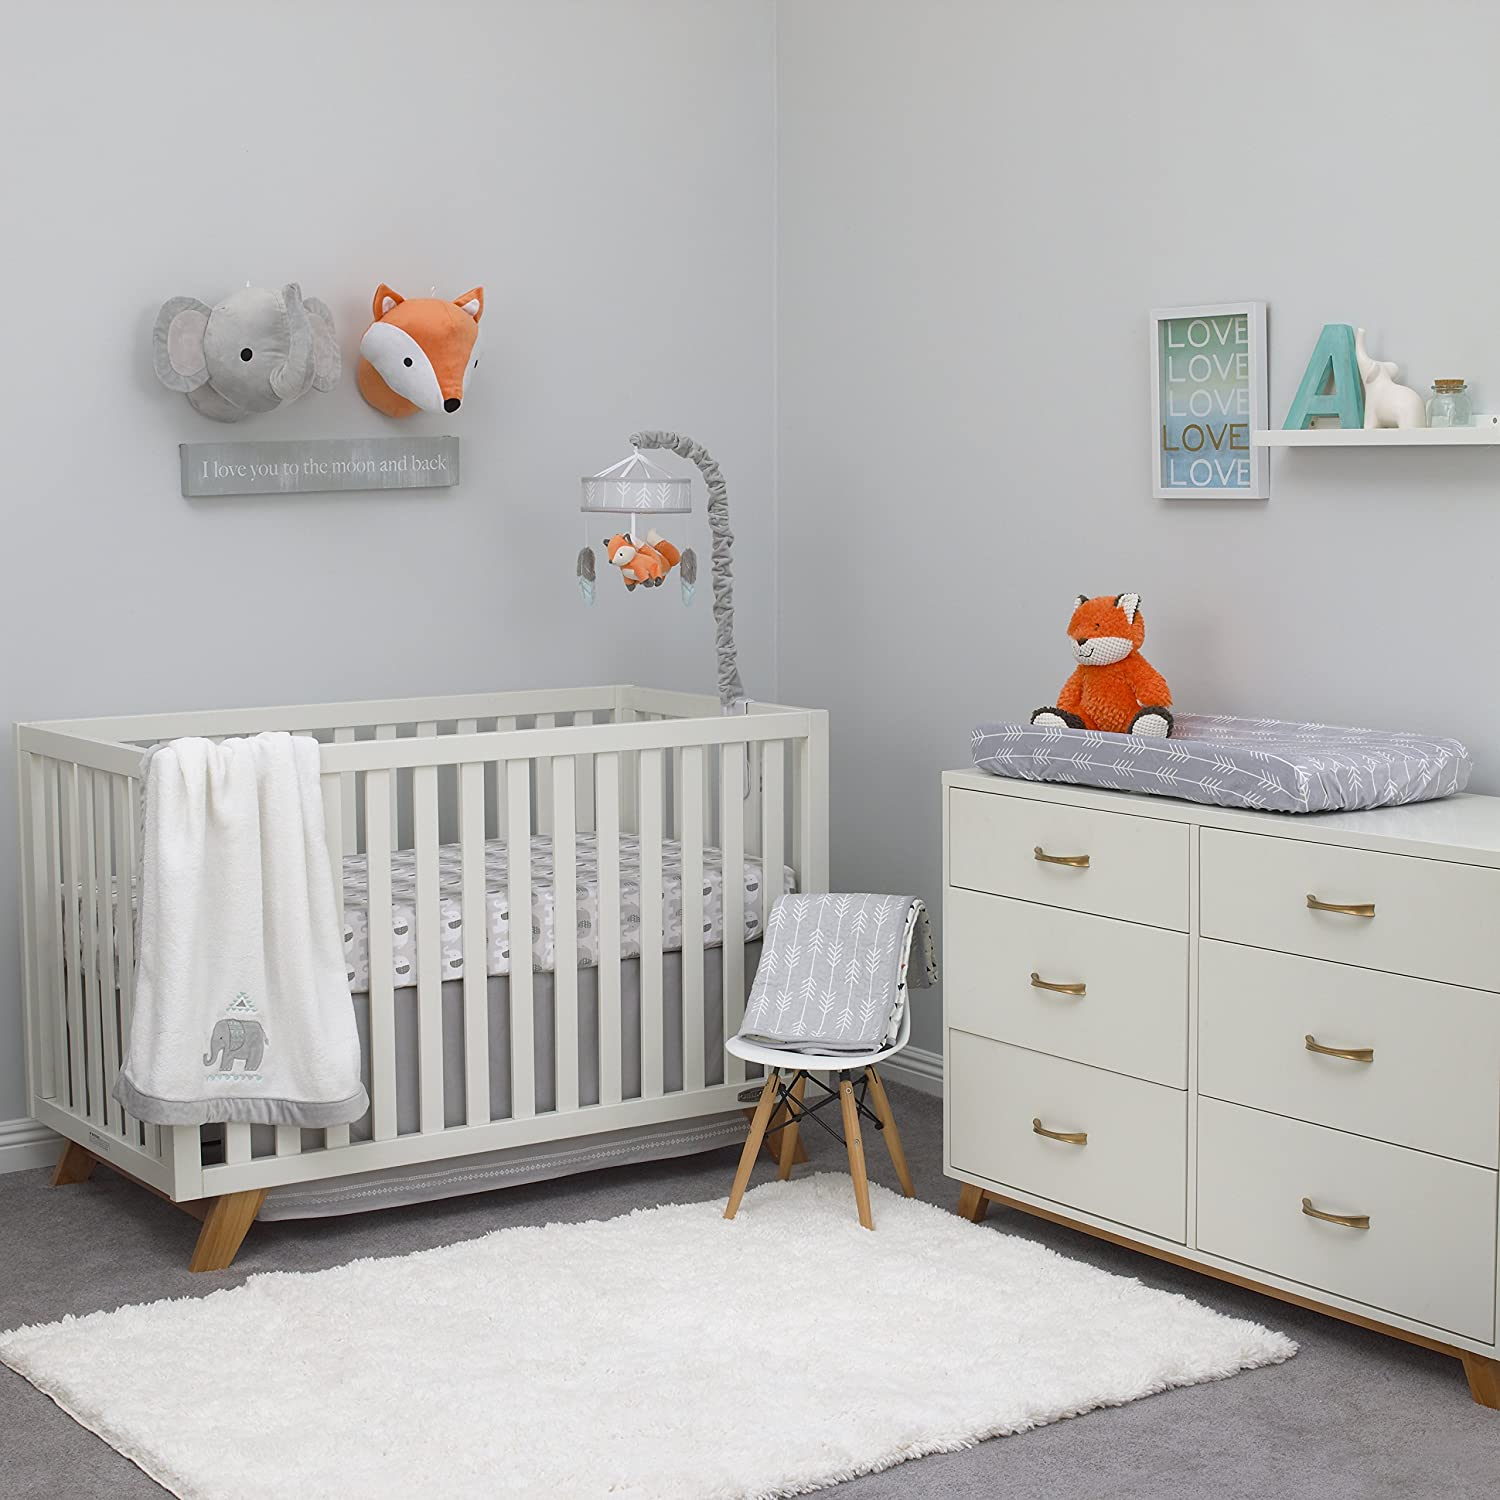 Grey NoJo Aztec Mix /& Match Nursery Crib Bedskirt//Dust Ruffle with Embroidered Trim